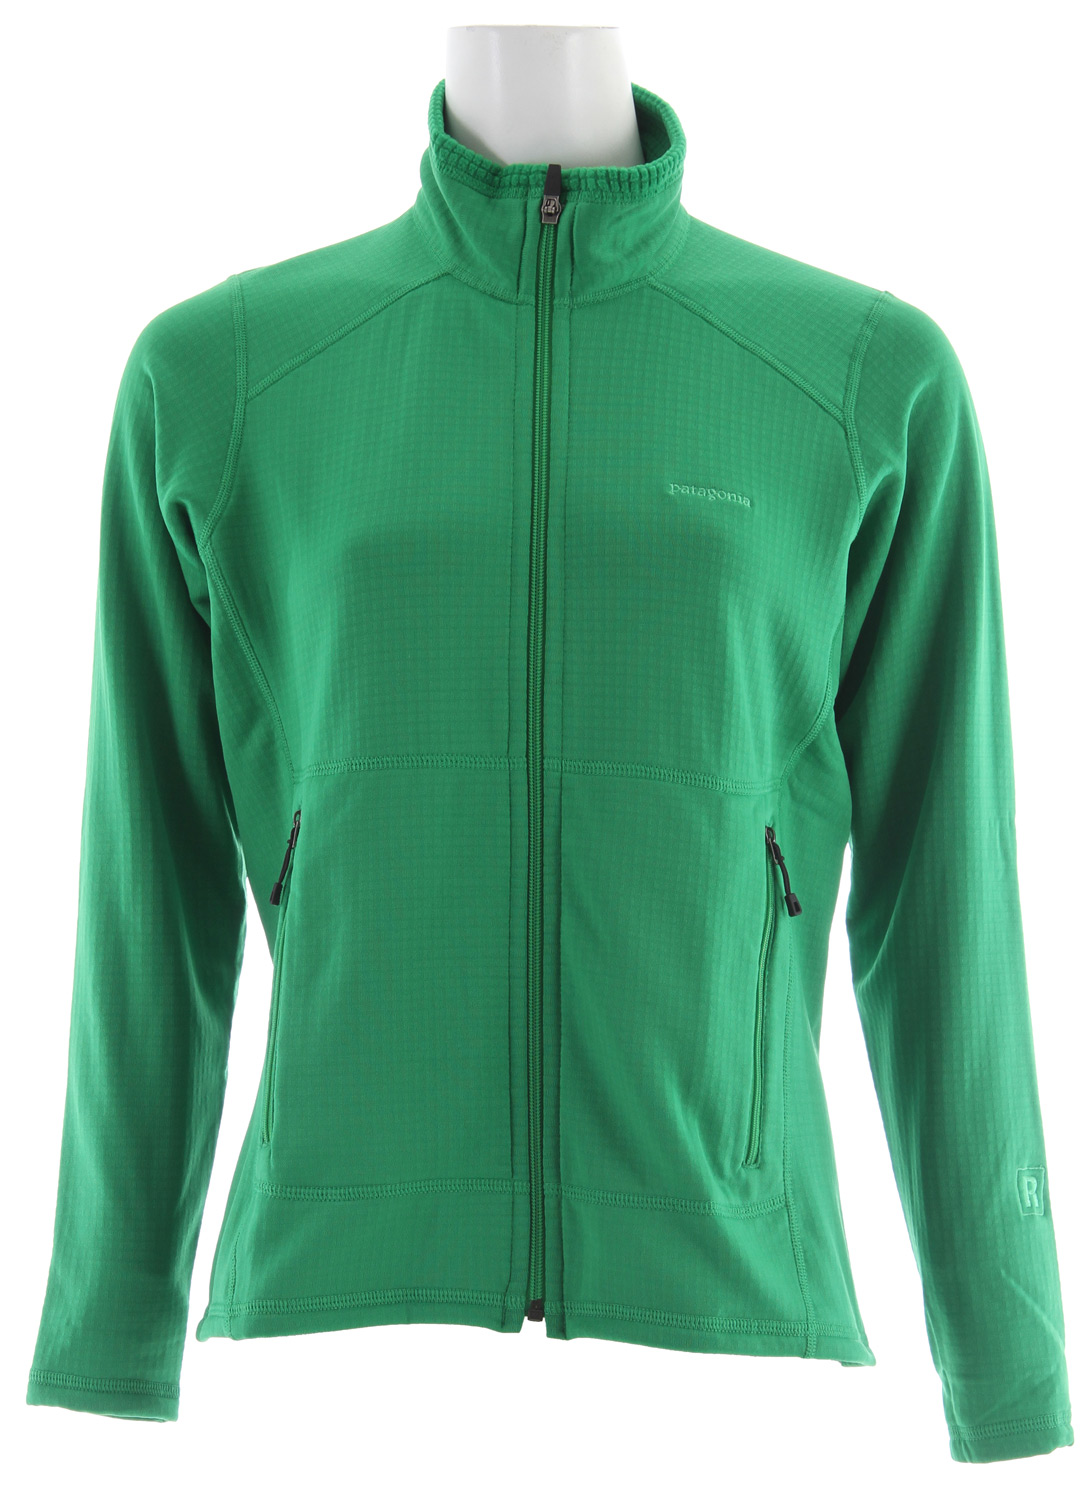 It stretches, breathes, wicks and warms - no wonder so many serious trail and mountain athletes use and abuse our R1 styles. And the full-zip front makes it even more versatile, from a midlayer in winter to a lightweight jacket on early fall mornings and alpine summer evenings. Plus, the fabric has never been better: We worked with Polartec to fine-tune the high/low interior grid polyester (Polartec Power Dry  into an exclusive that's more breathable and compressible and has an improved feel and durability, while still maintaining its warmth. Two zippered handwarmer pockets sit above the harness line, and offset shoulder seams steer clear of pack straps.Key Features of the Patagonia R1 Full Zip Jacket:  Versatile R1 fleece provides excellent stretch, warmth, wicking and breathability in a variety of temperatures  Fleece has high/low grid on inside for enhanced compressibility, airflow and decreased dry time  Microfiber face speeds moisture wicking and allows for easy layering  Off-the-shoulder seam construction reduces bulk while wearing a backpack  Pockets: Two zippered handwarmers  6.8-oz Polartec Power Dry 93% polyester (41% recycled /7% spandex  357 g (12.6 oz   Recycled Polyester: We recycle used soda bottles, unusable second quality fabrics and worn out garments into polyester fibers to produce many of our clothes.  Regulator Insulation: Provides phenomenal compressibility, light weight warmth and moisture transport, whether used alone or as part of a layering system. - $81.95